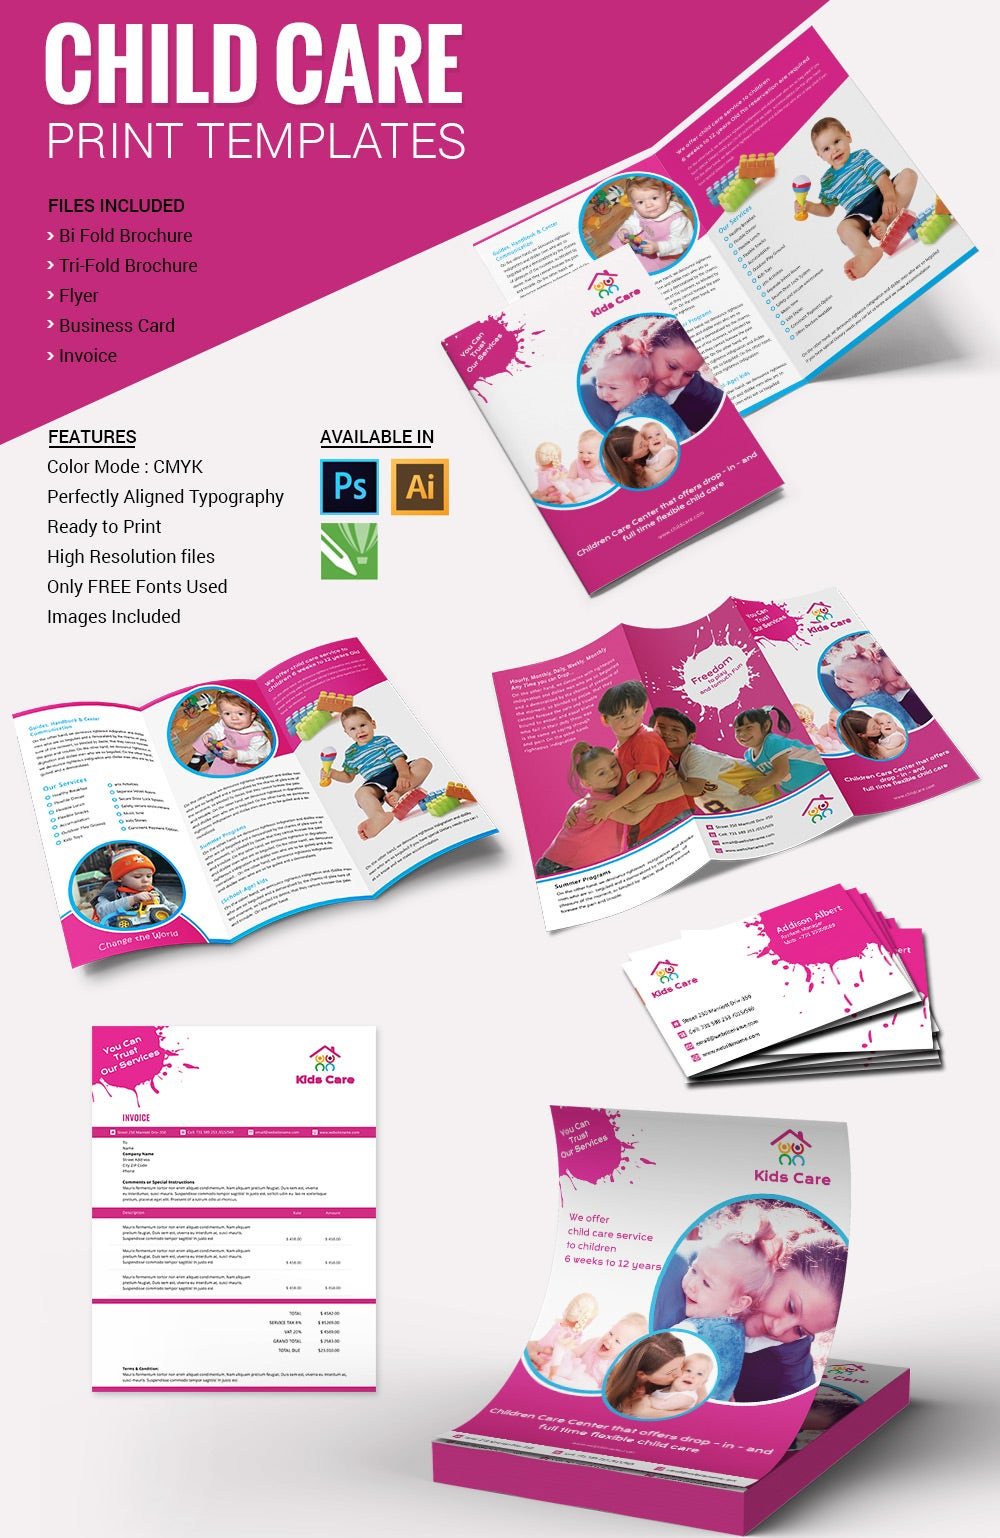 10 beautiful child care brochure templates free for Child care brochure template free